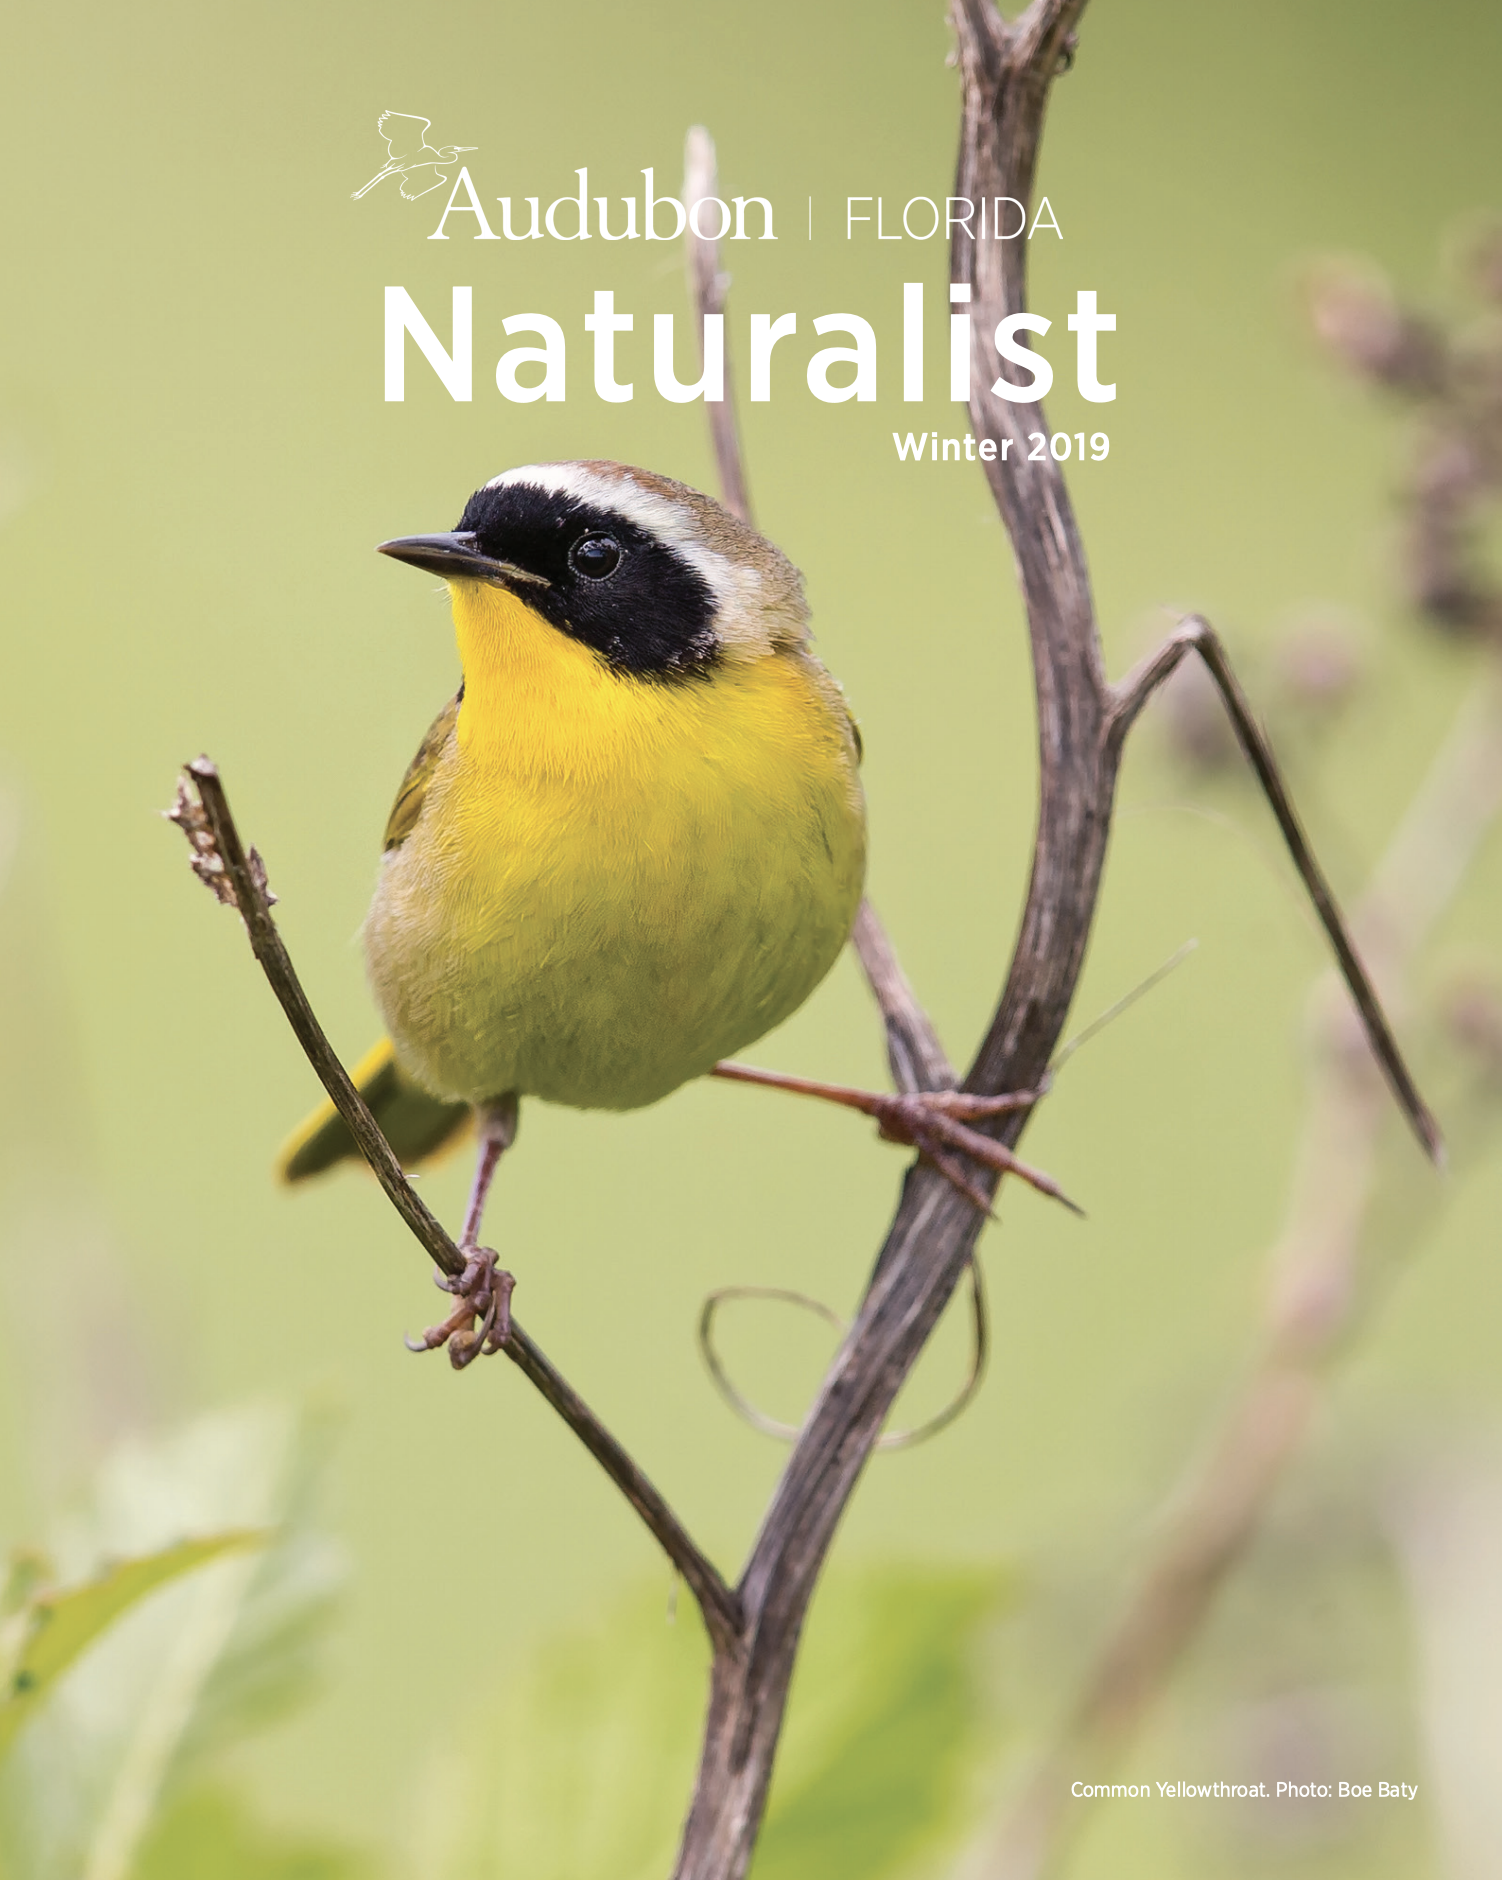 Common Yellowthroat. Photo: Boe Baty.